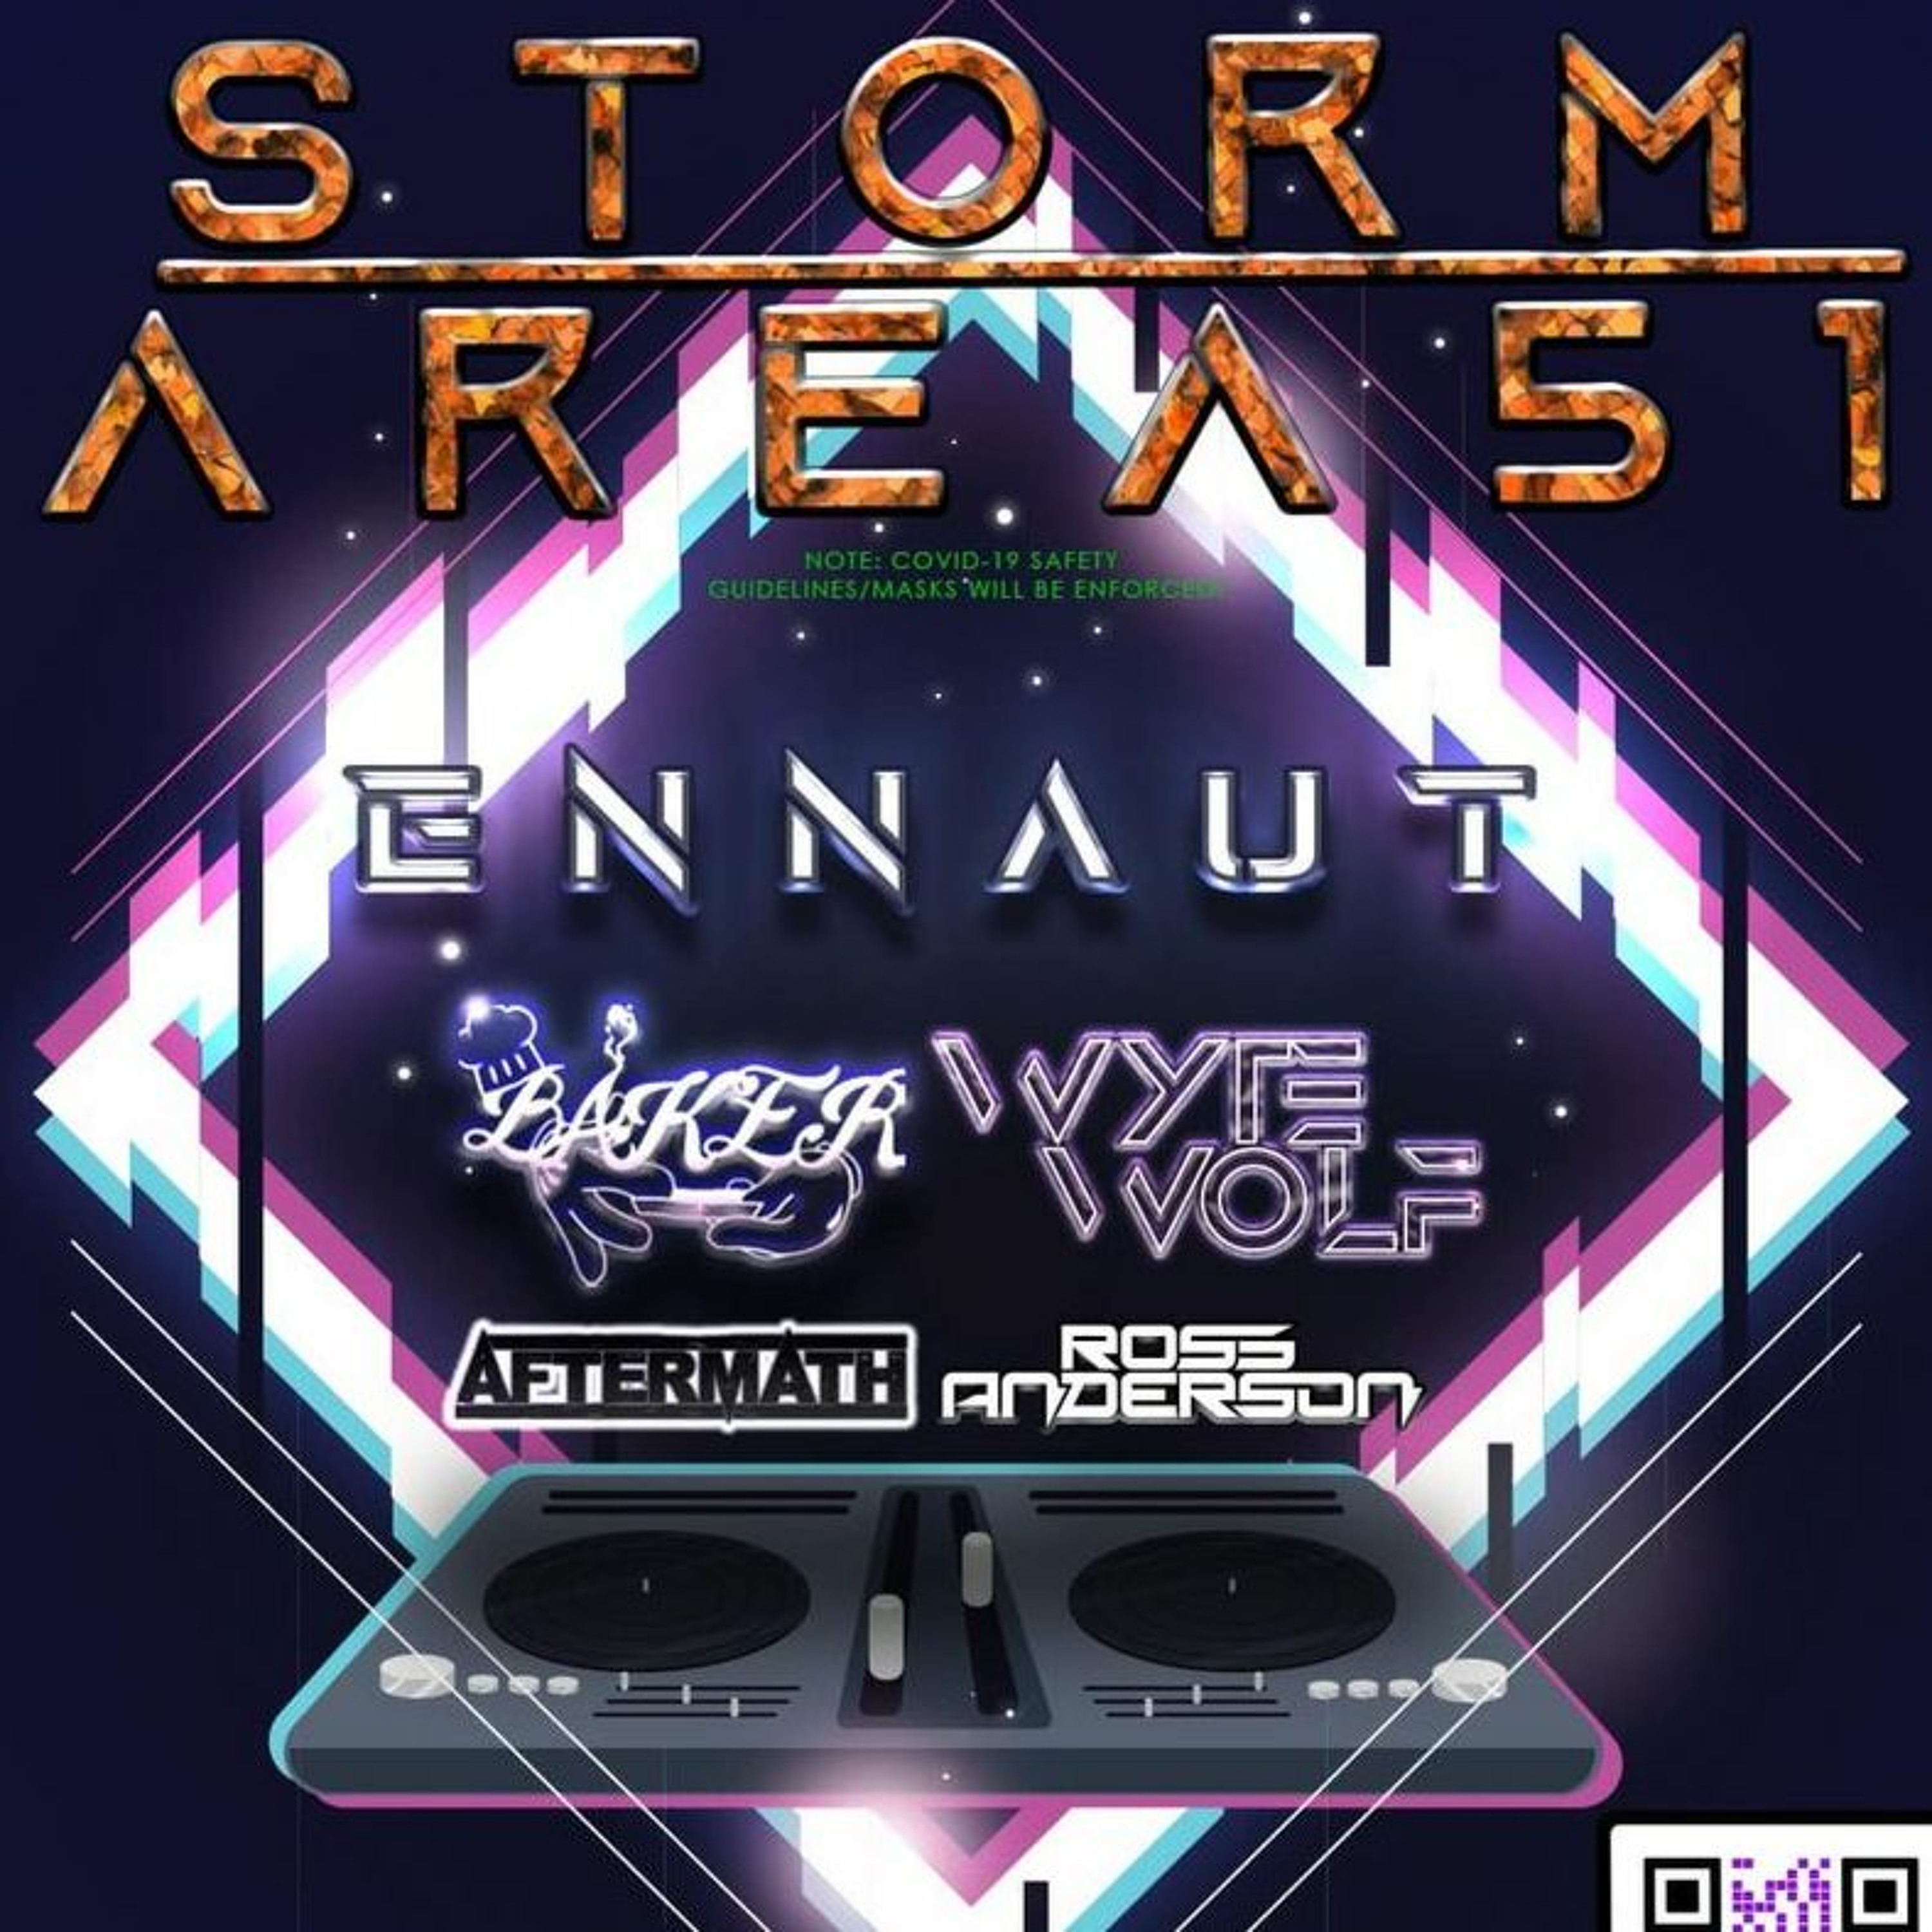 Storm Area 51 Demo Mix - Techno, Trance & Hardstyle